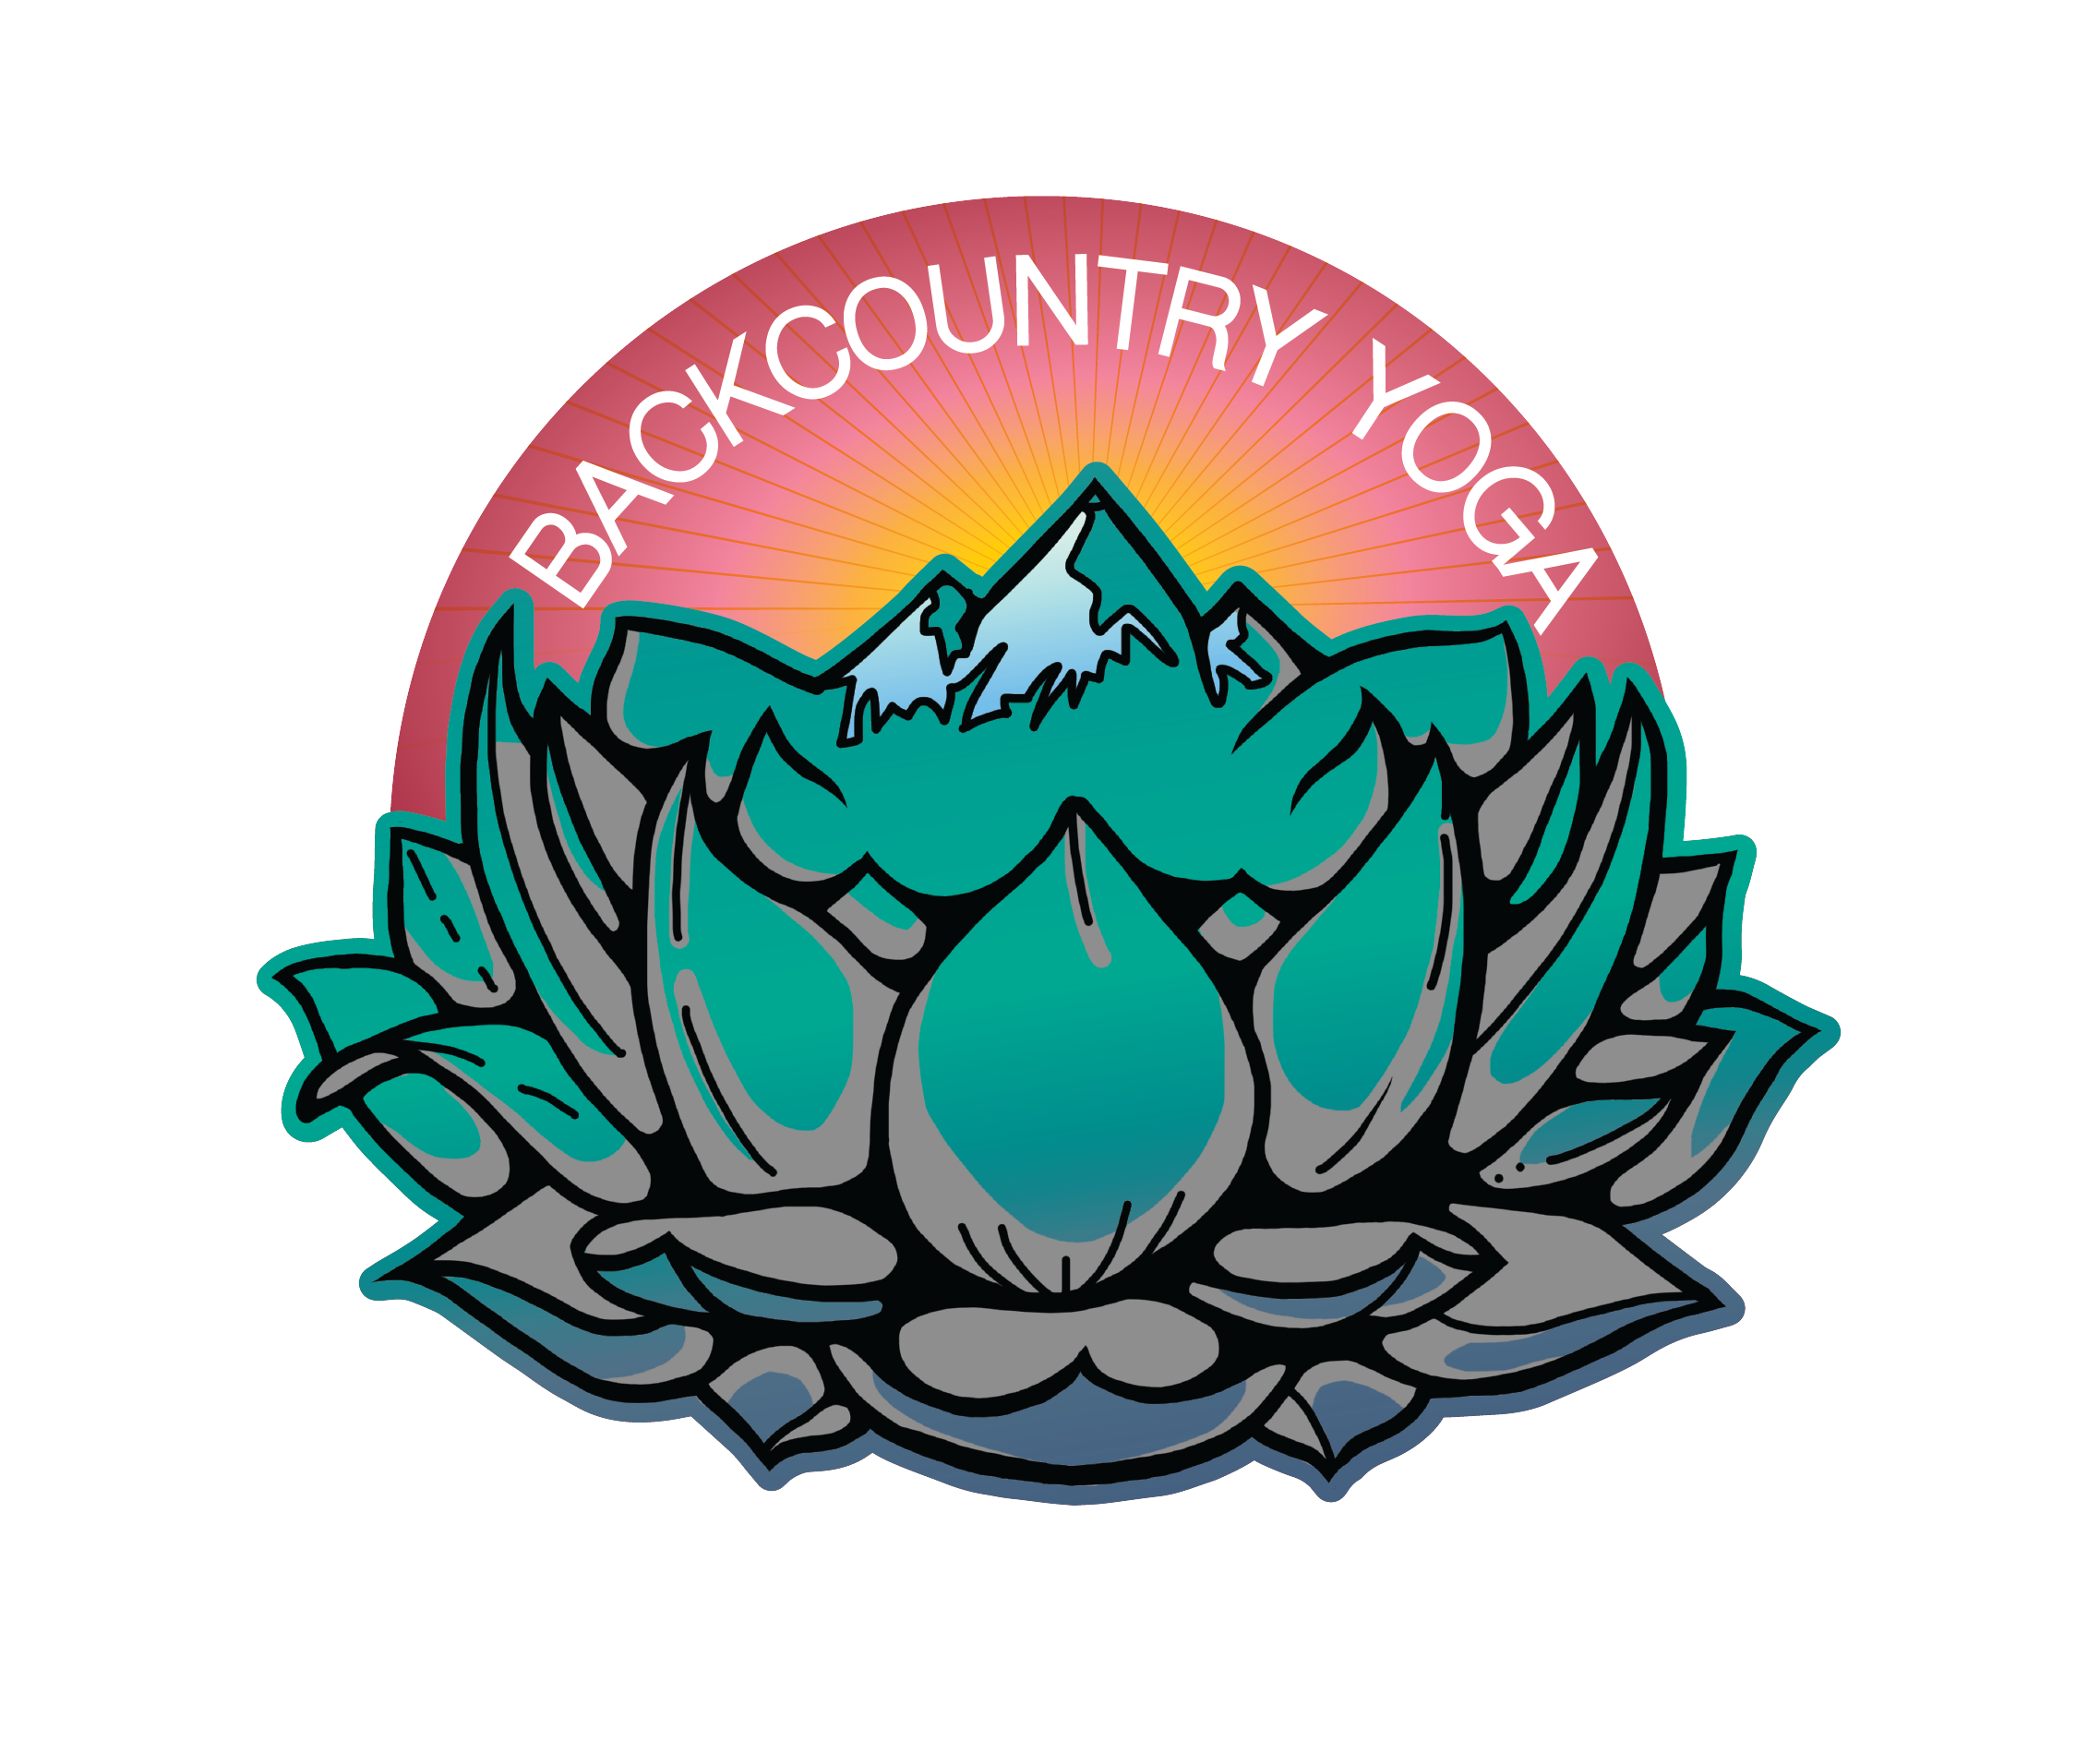 Backcountry Yoga